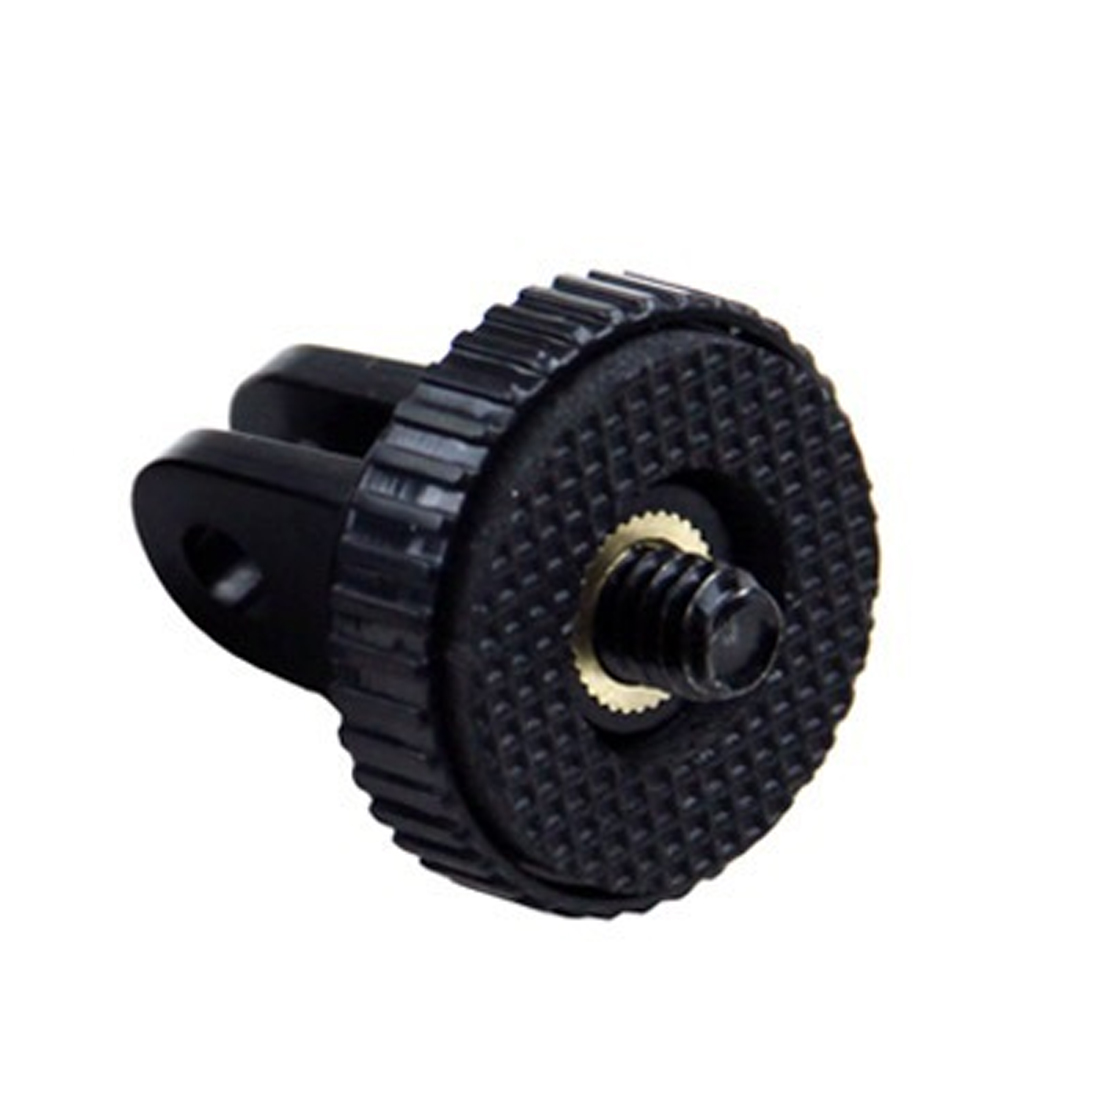 HONGDAK 100% New Mini <font><b>Tripod</b></font> <font><b>Screw</b></font> <font><b>Mount</b></font> <font><b>Adapter</b></font> <font><b>1/4</b></font>